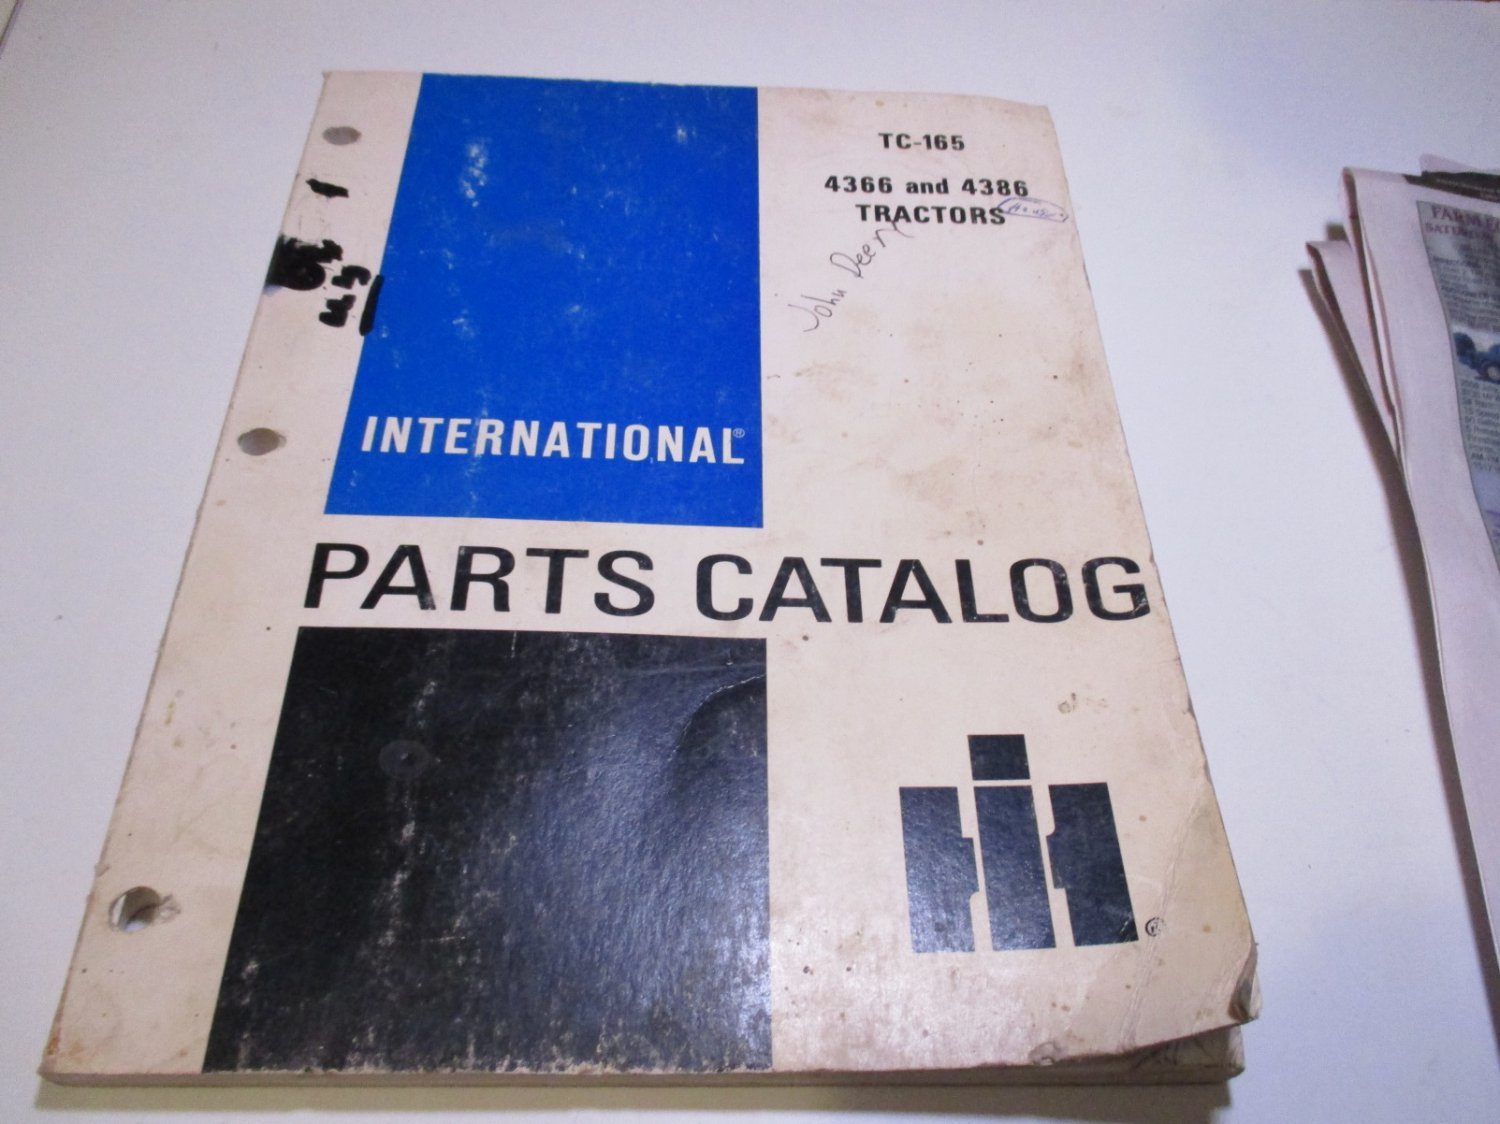 international parts catalog tc-165 4366 and 4386 tractors